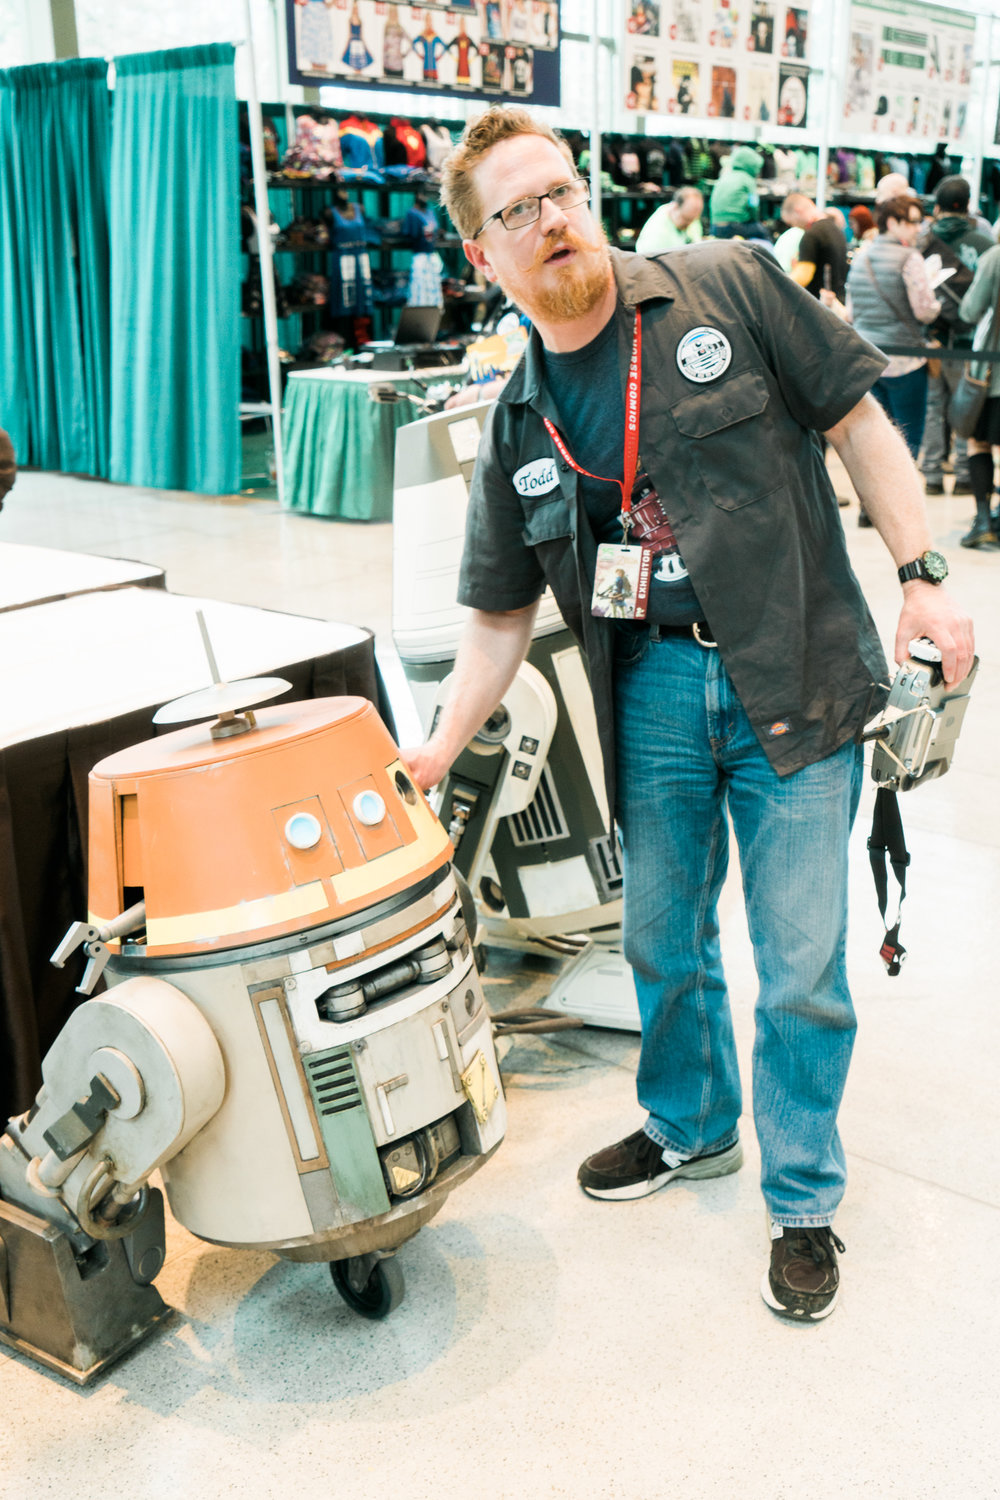 501st at Seattle Comicon-05223.jpg